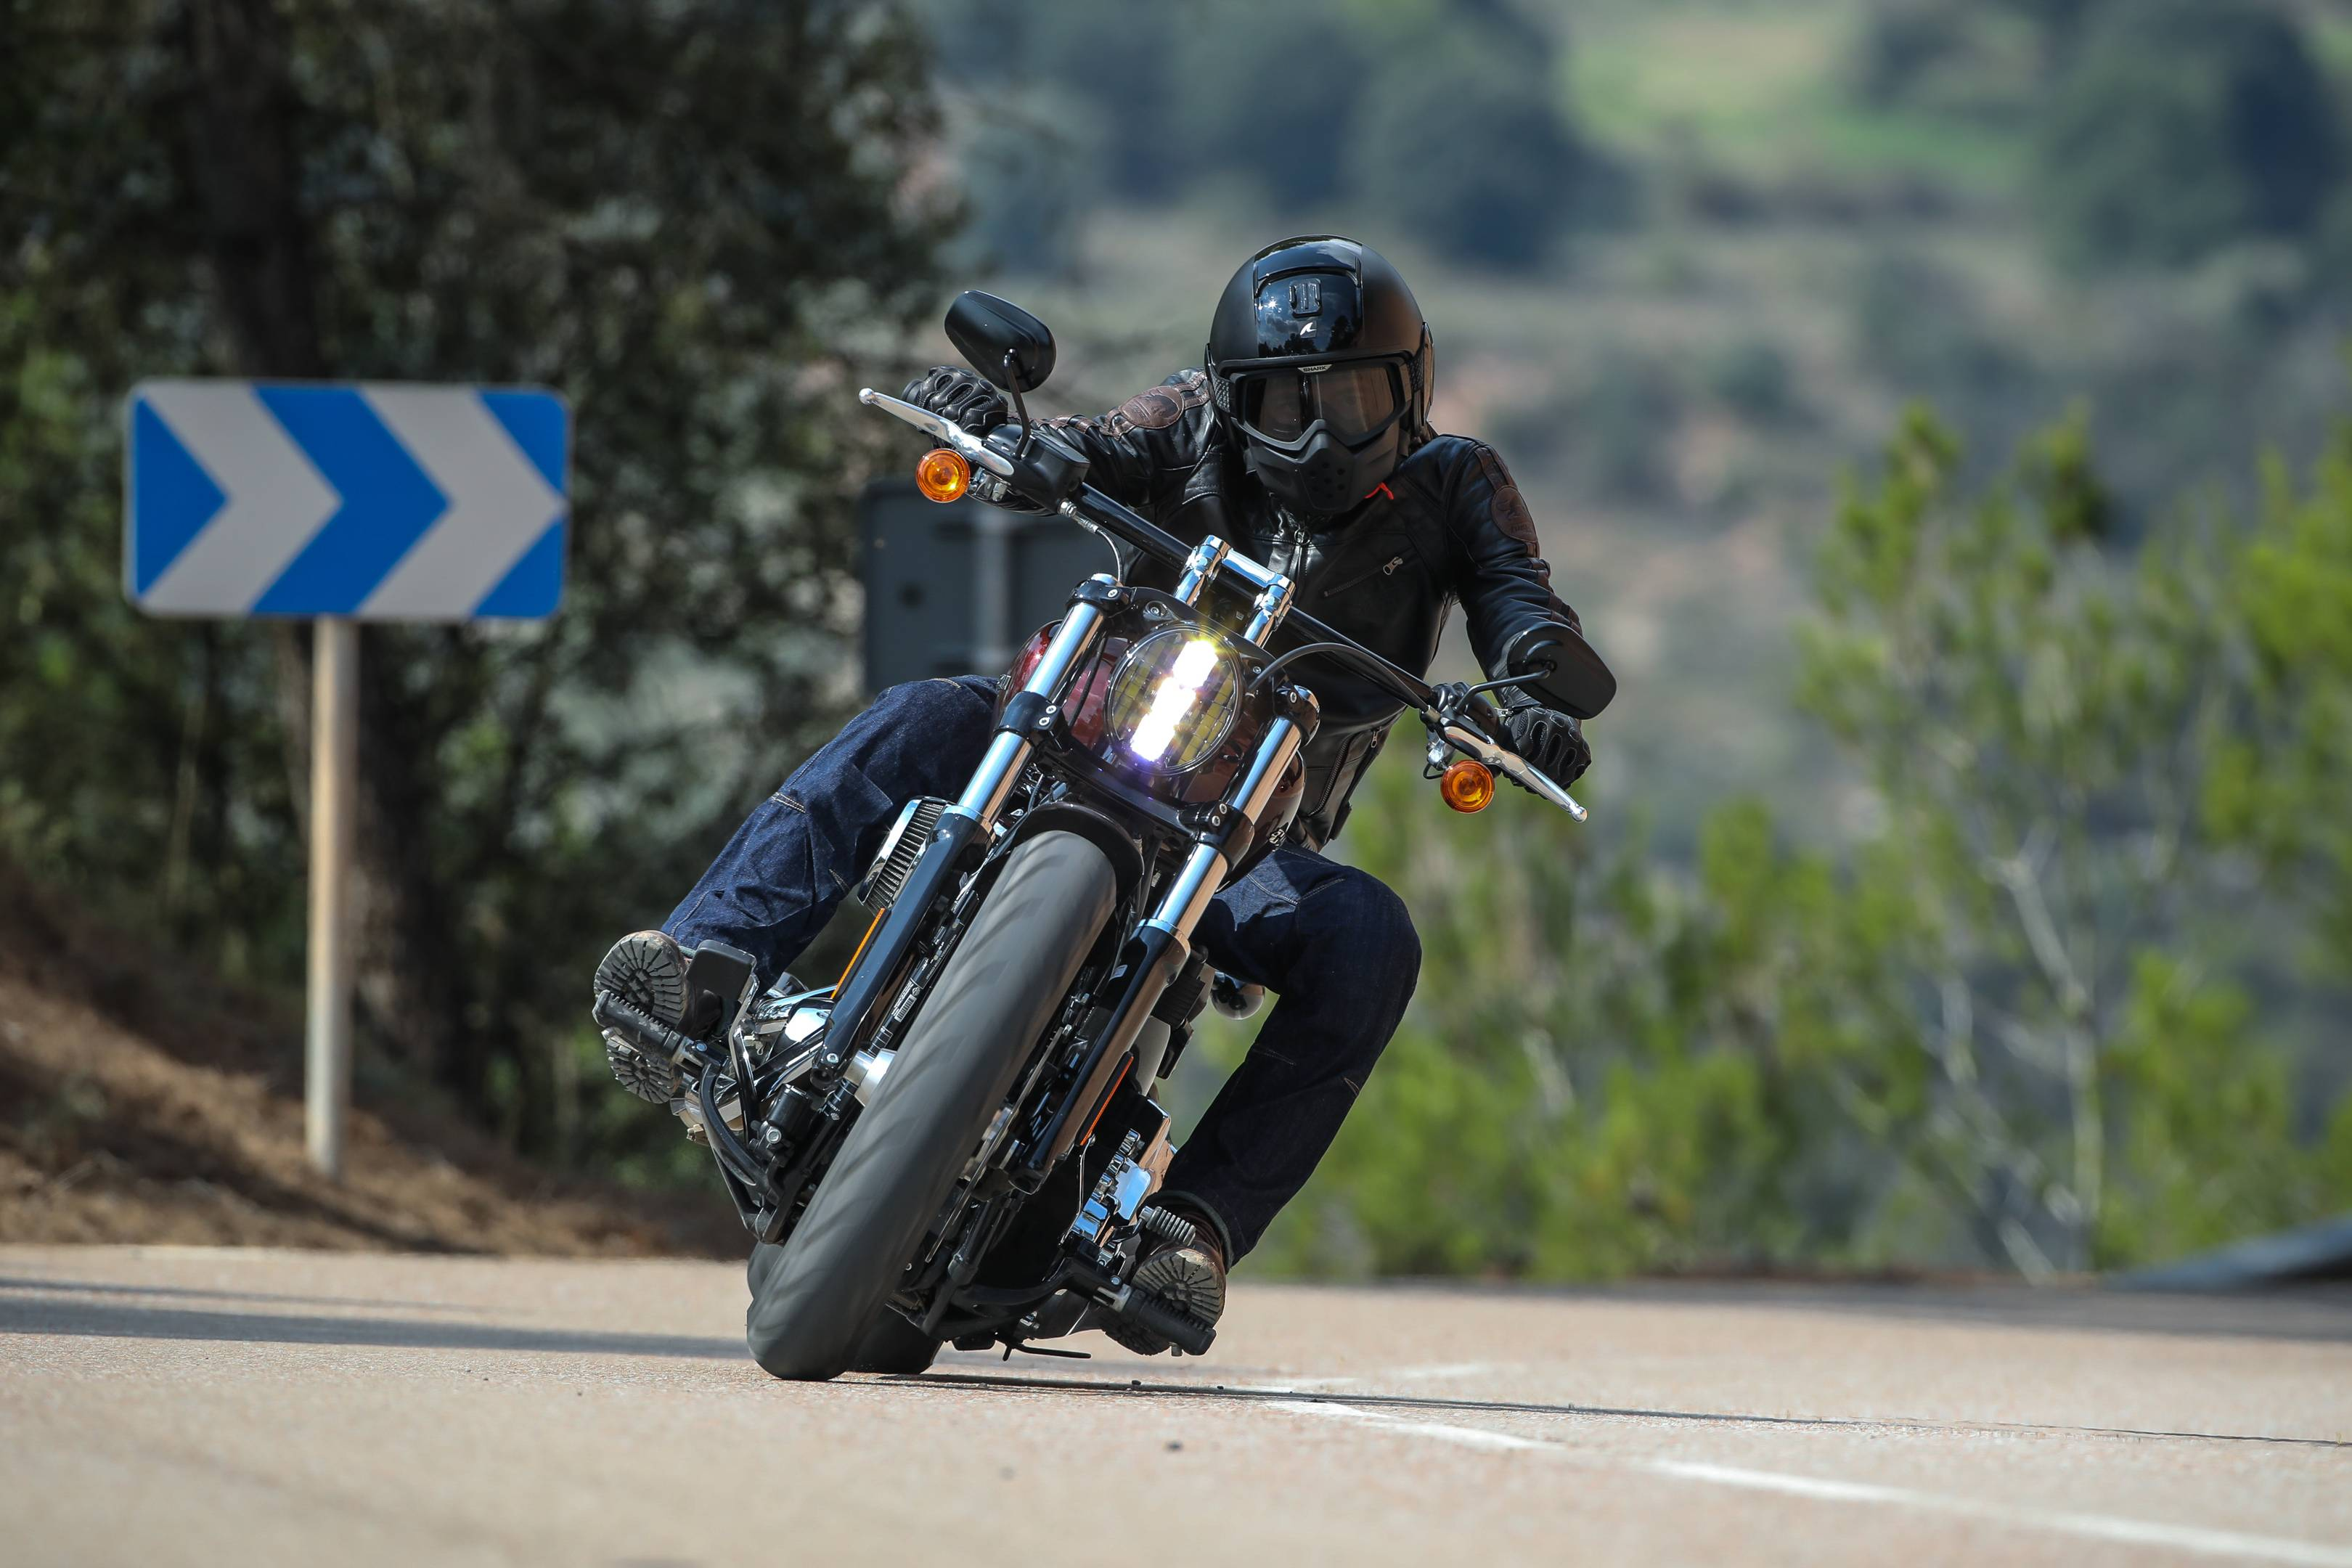 a95d12f5b Harley-Davidson's Breakout 114 is a bike you'll either love or hate